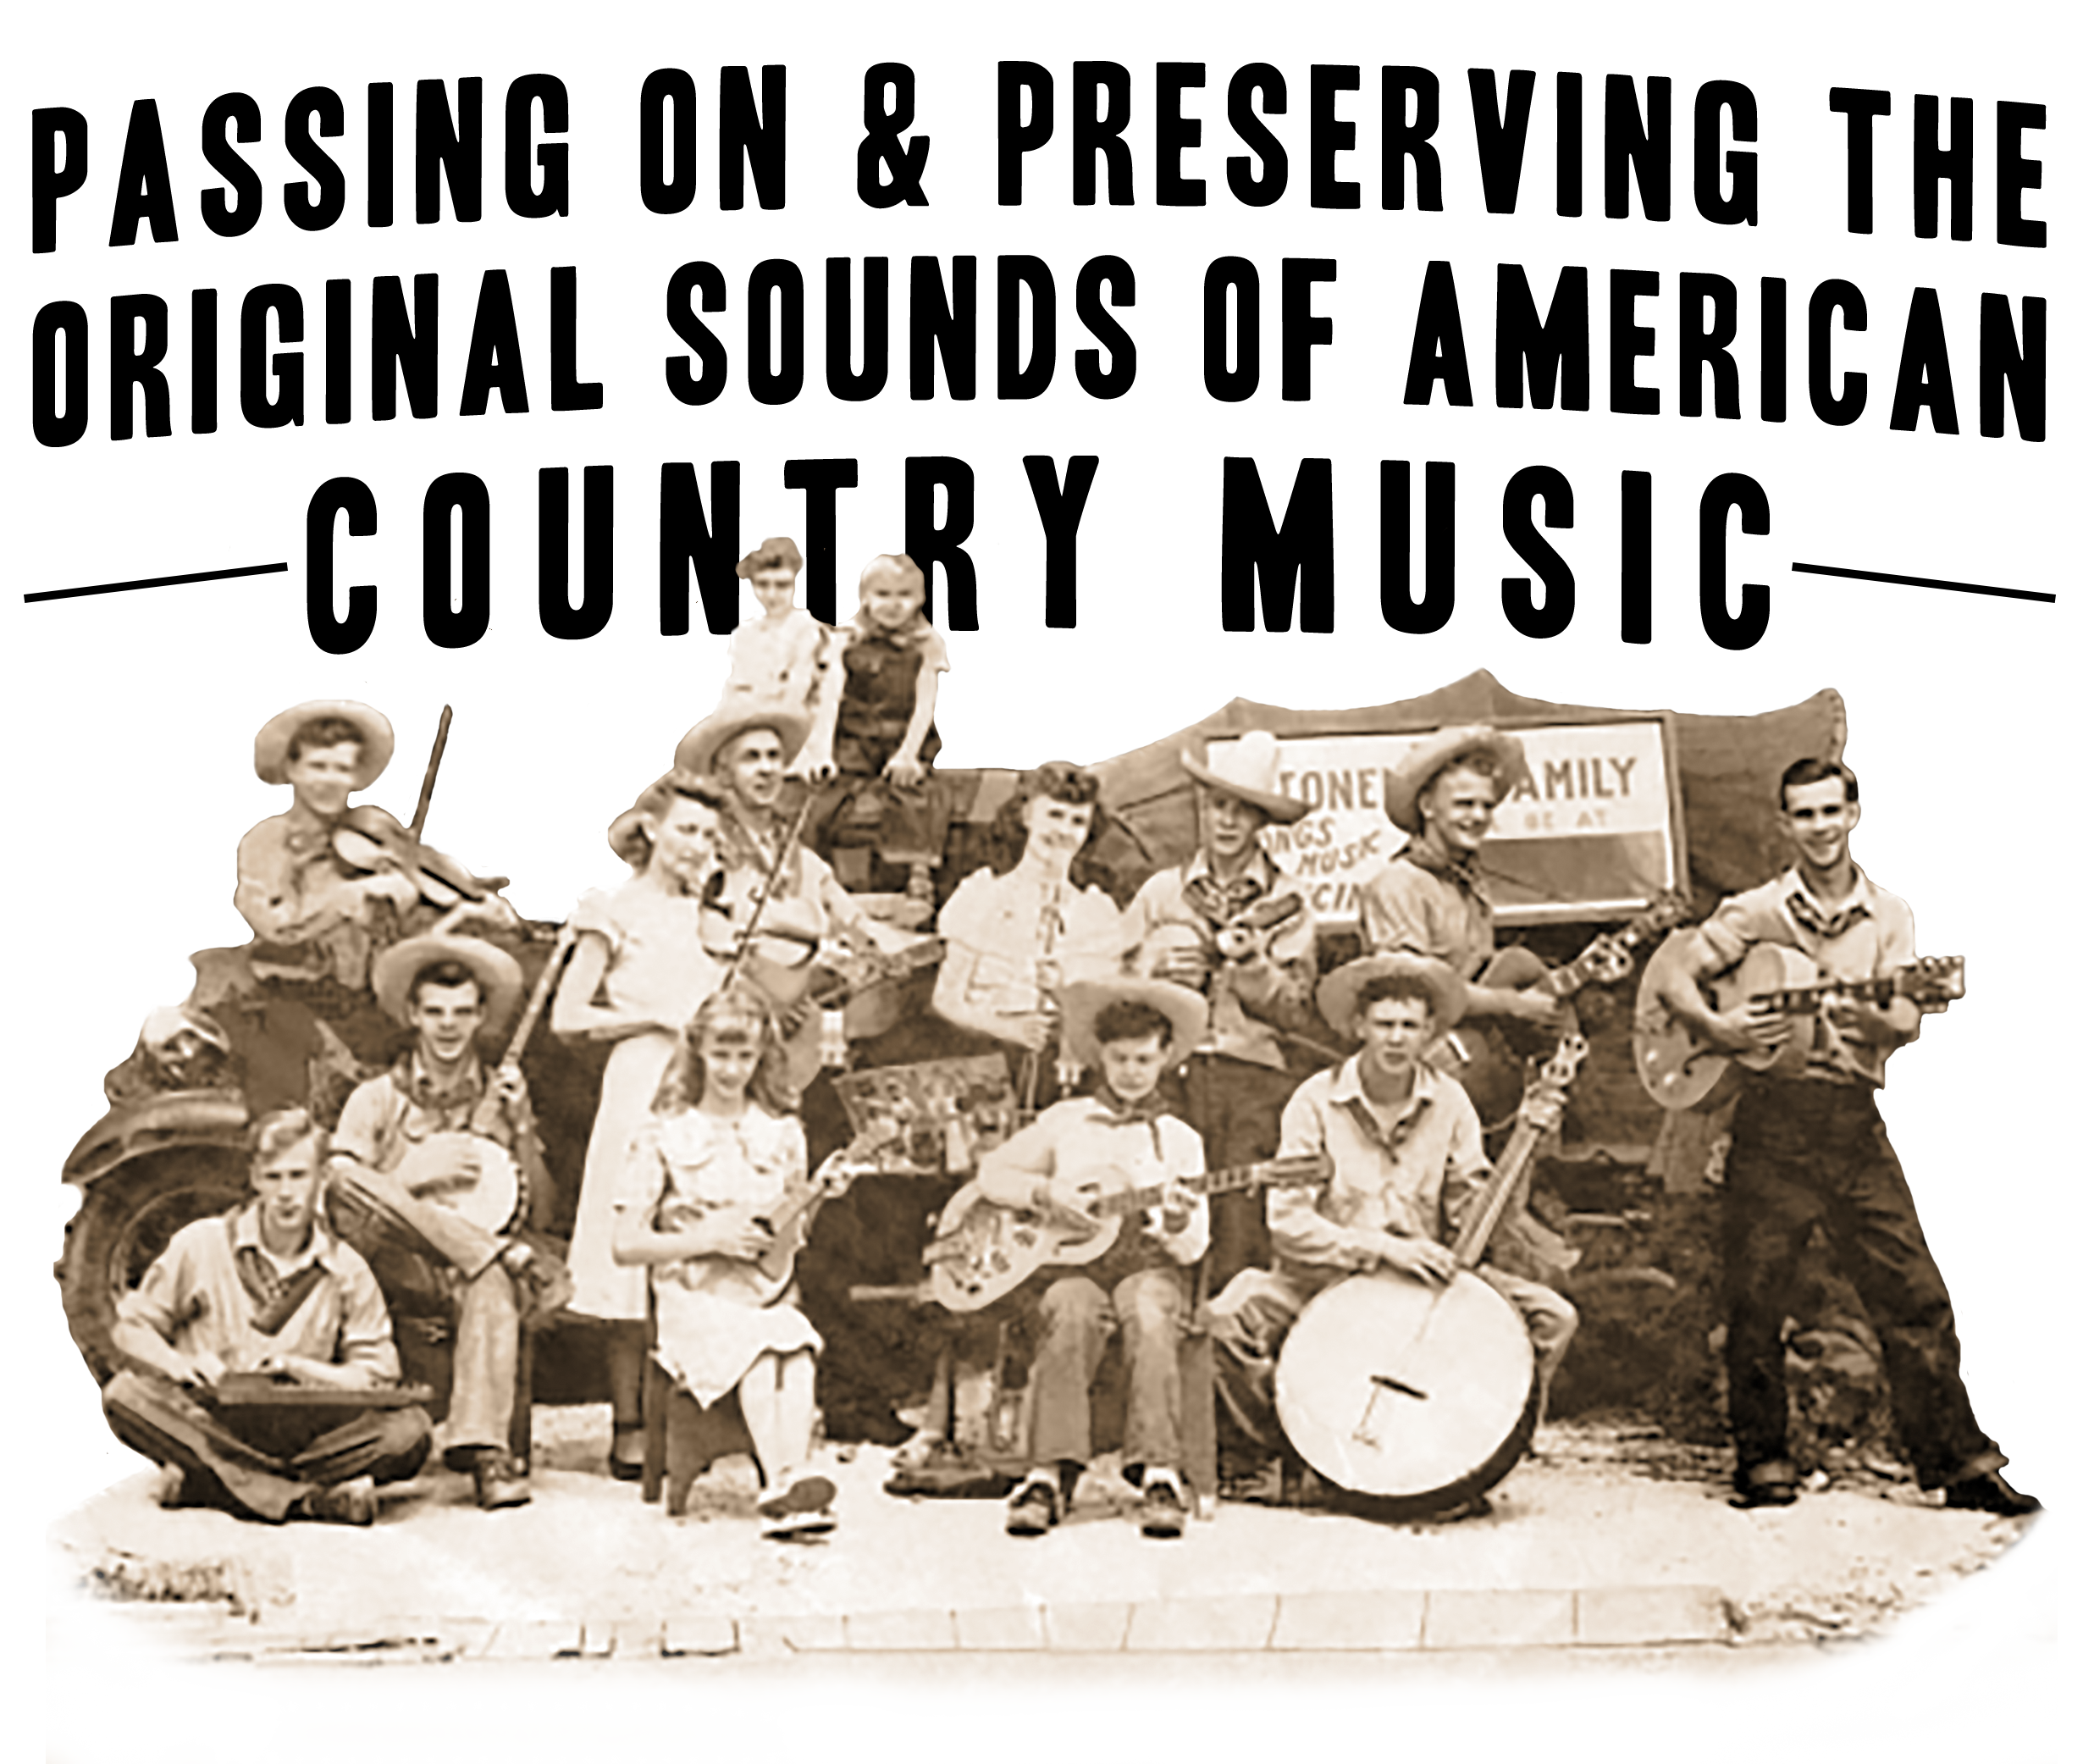 © Nashville School of Traditional Country Music, Community outreach, bluegrass and old-time music camp in Nashville, TN